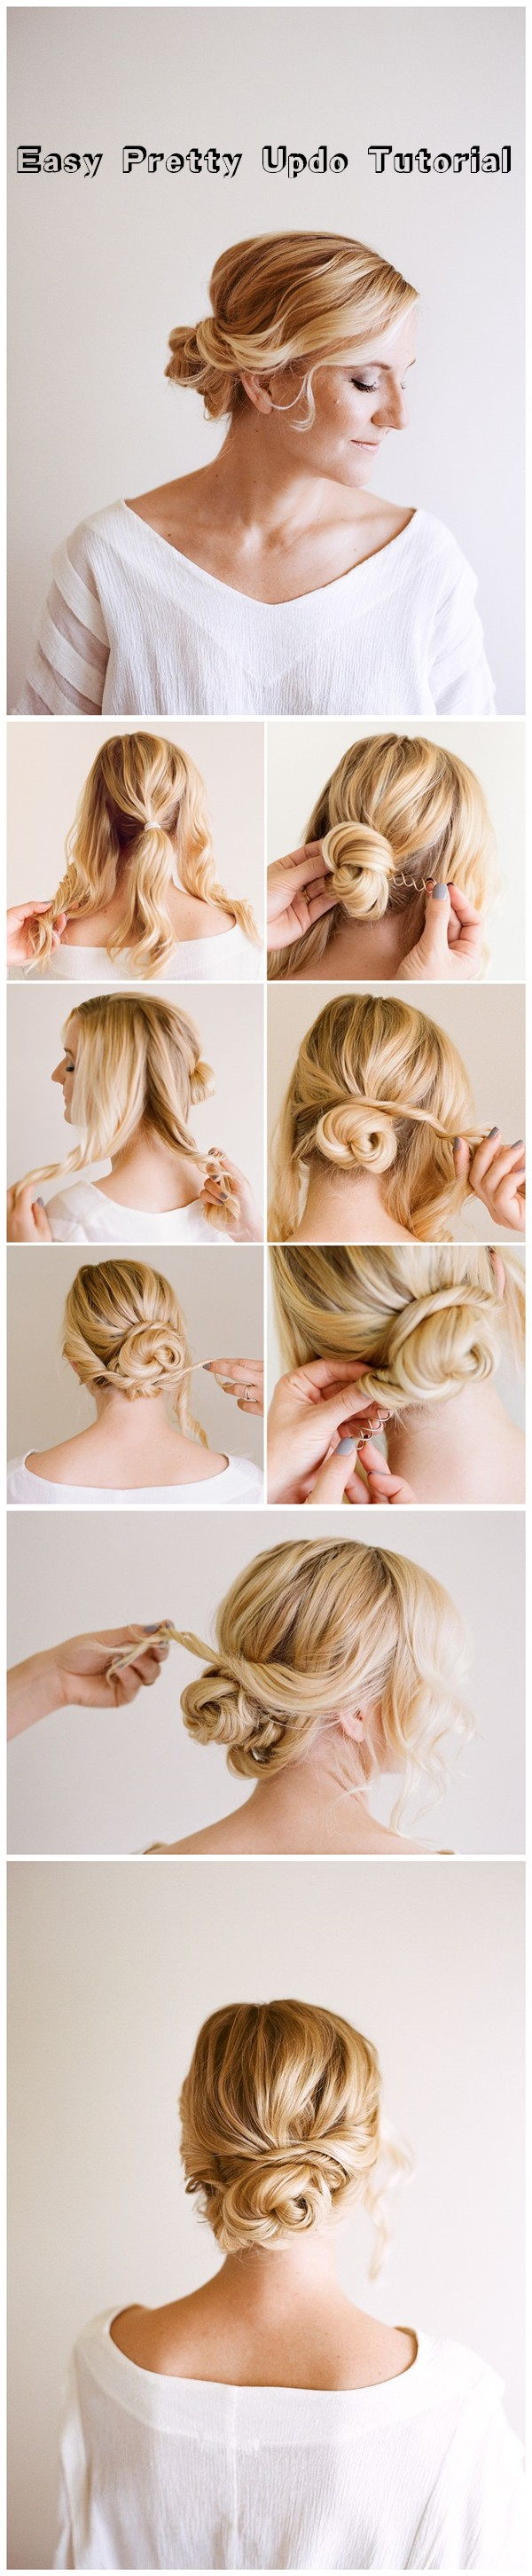 Easy Pretty Updo Hairstyle Tutorial